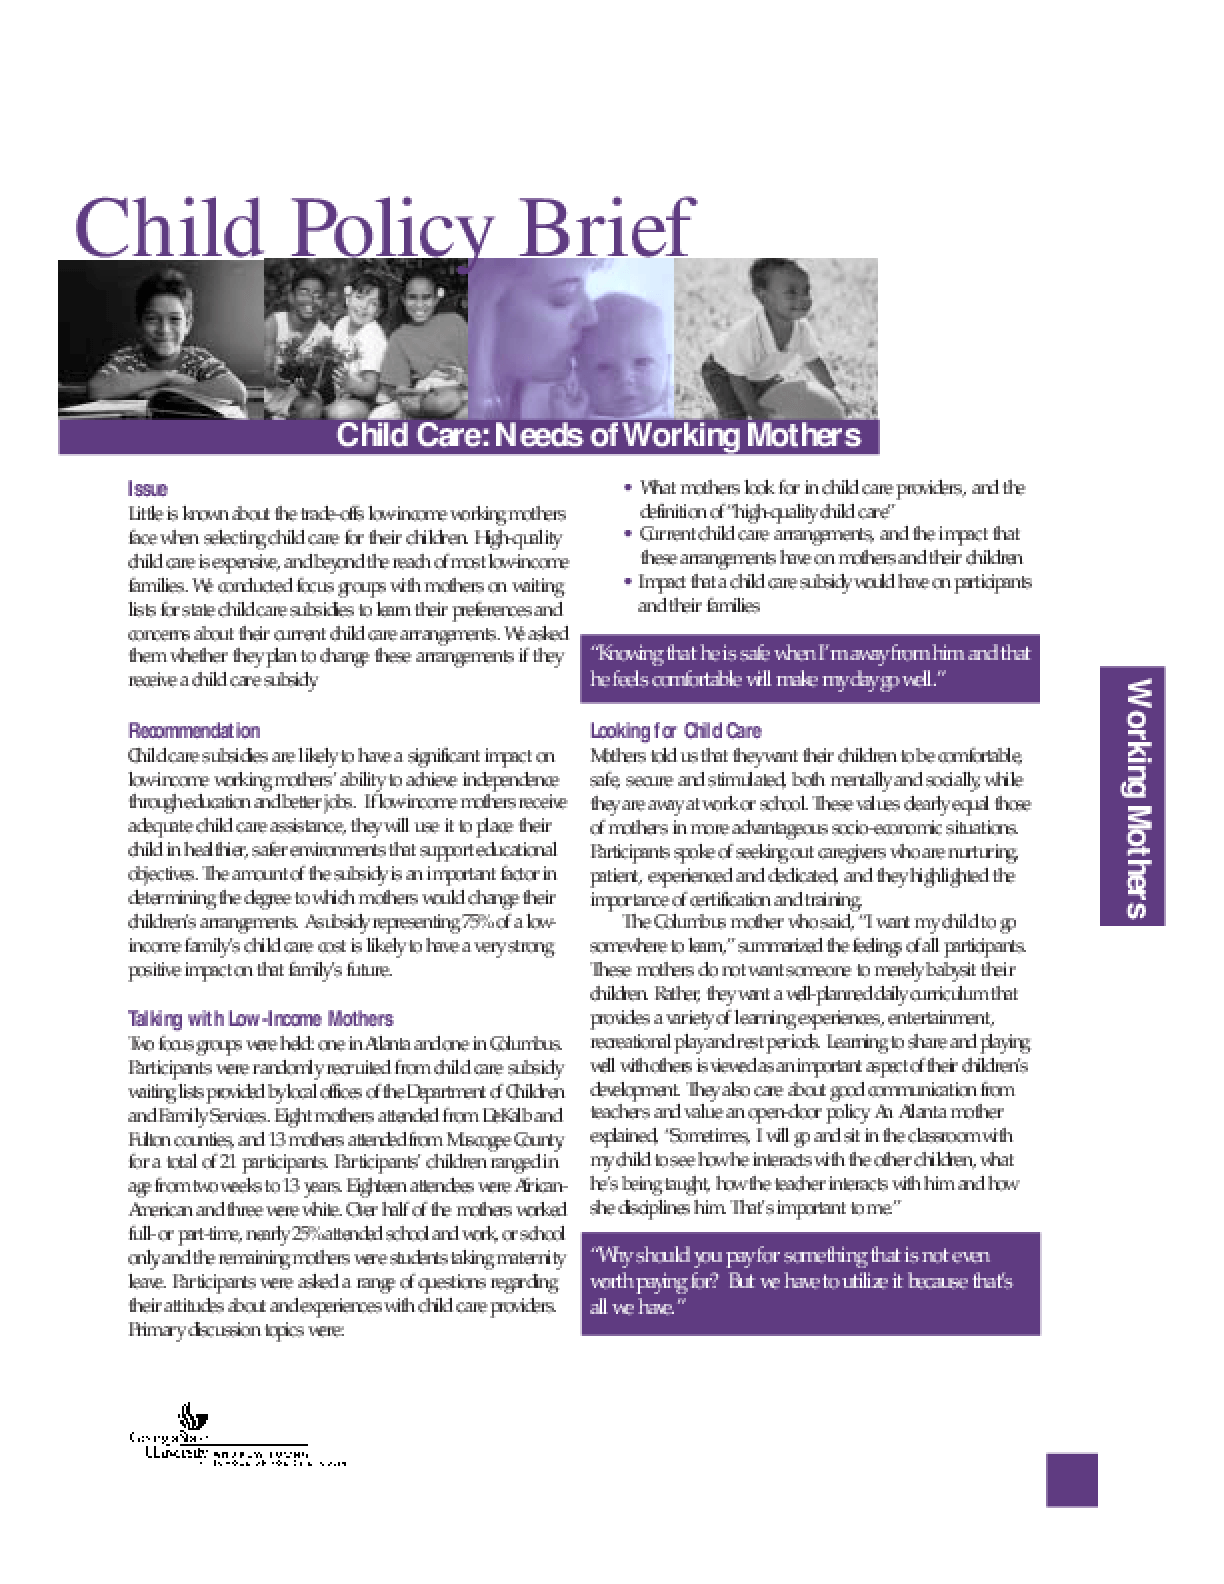 Child Care: Needs of Working Mothers